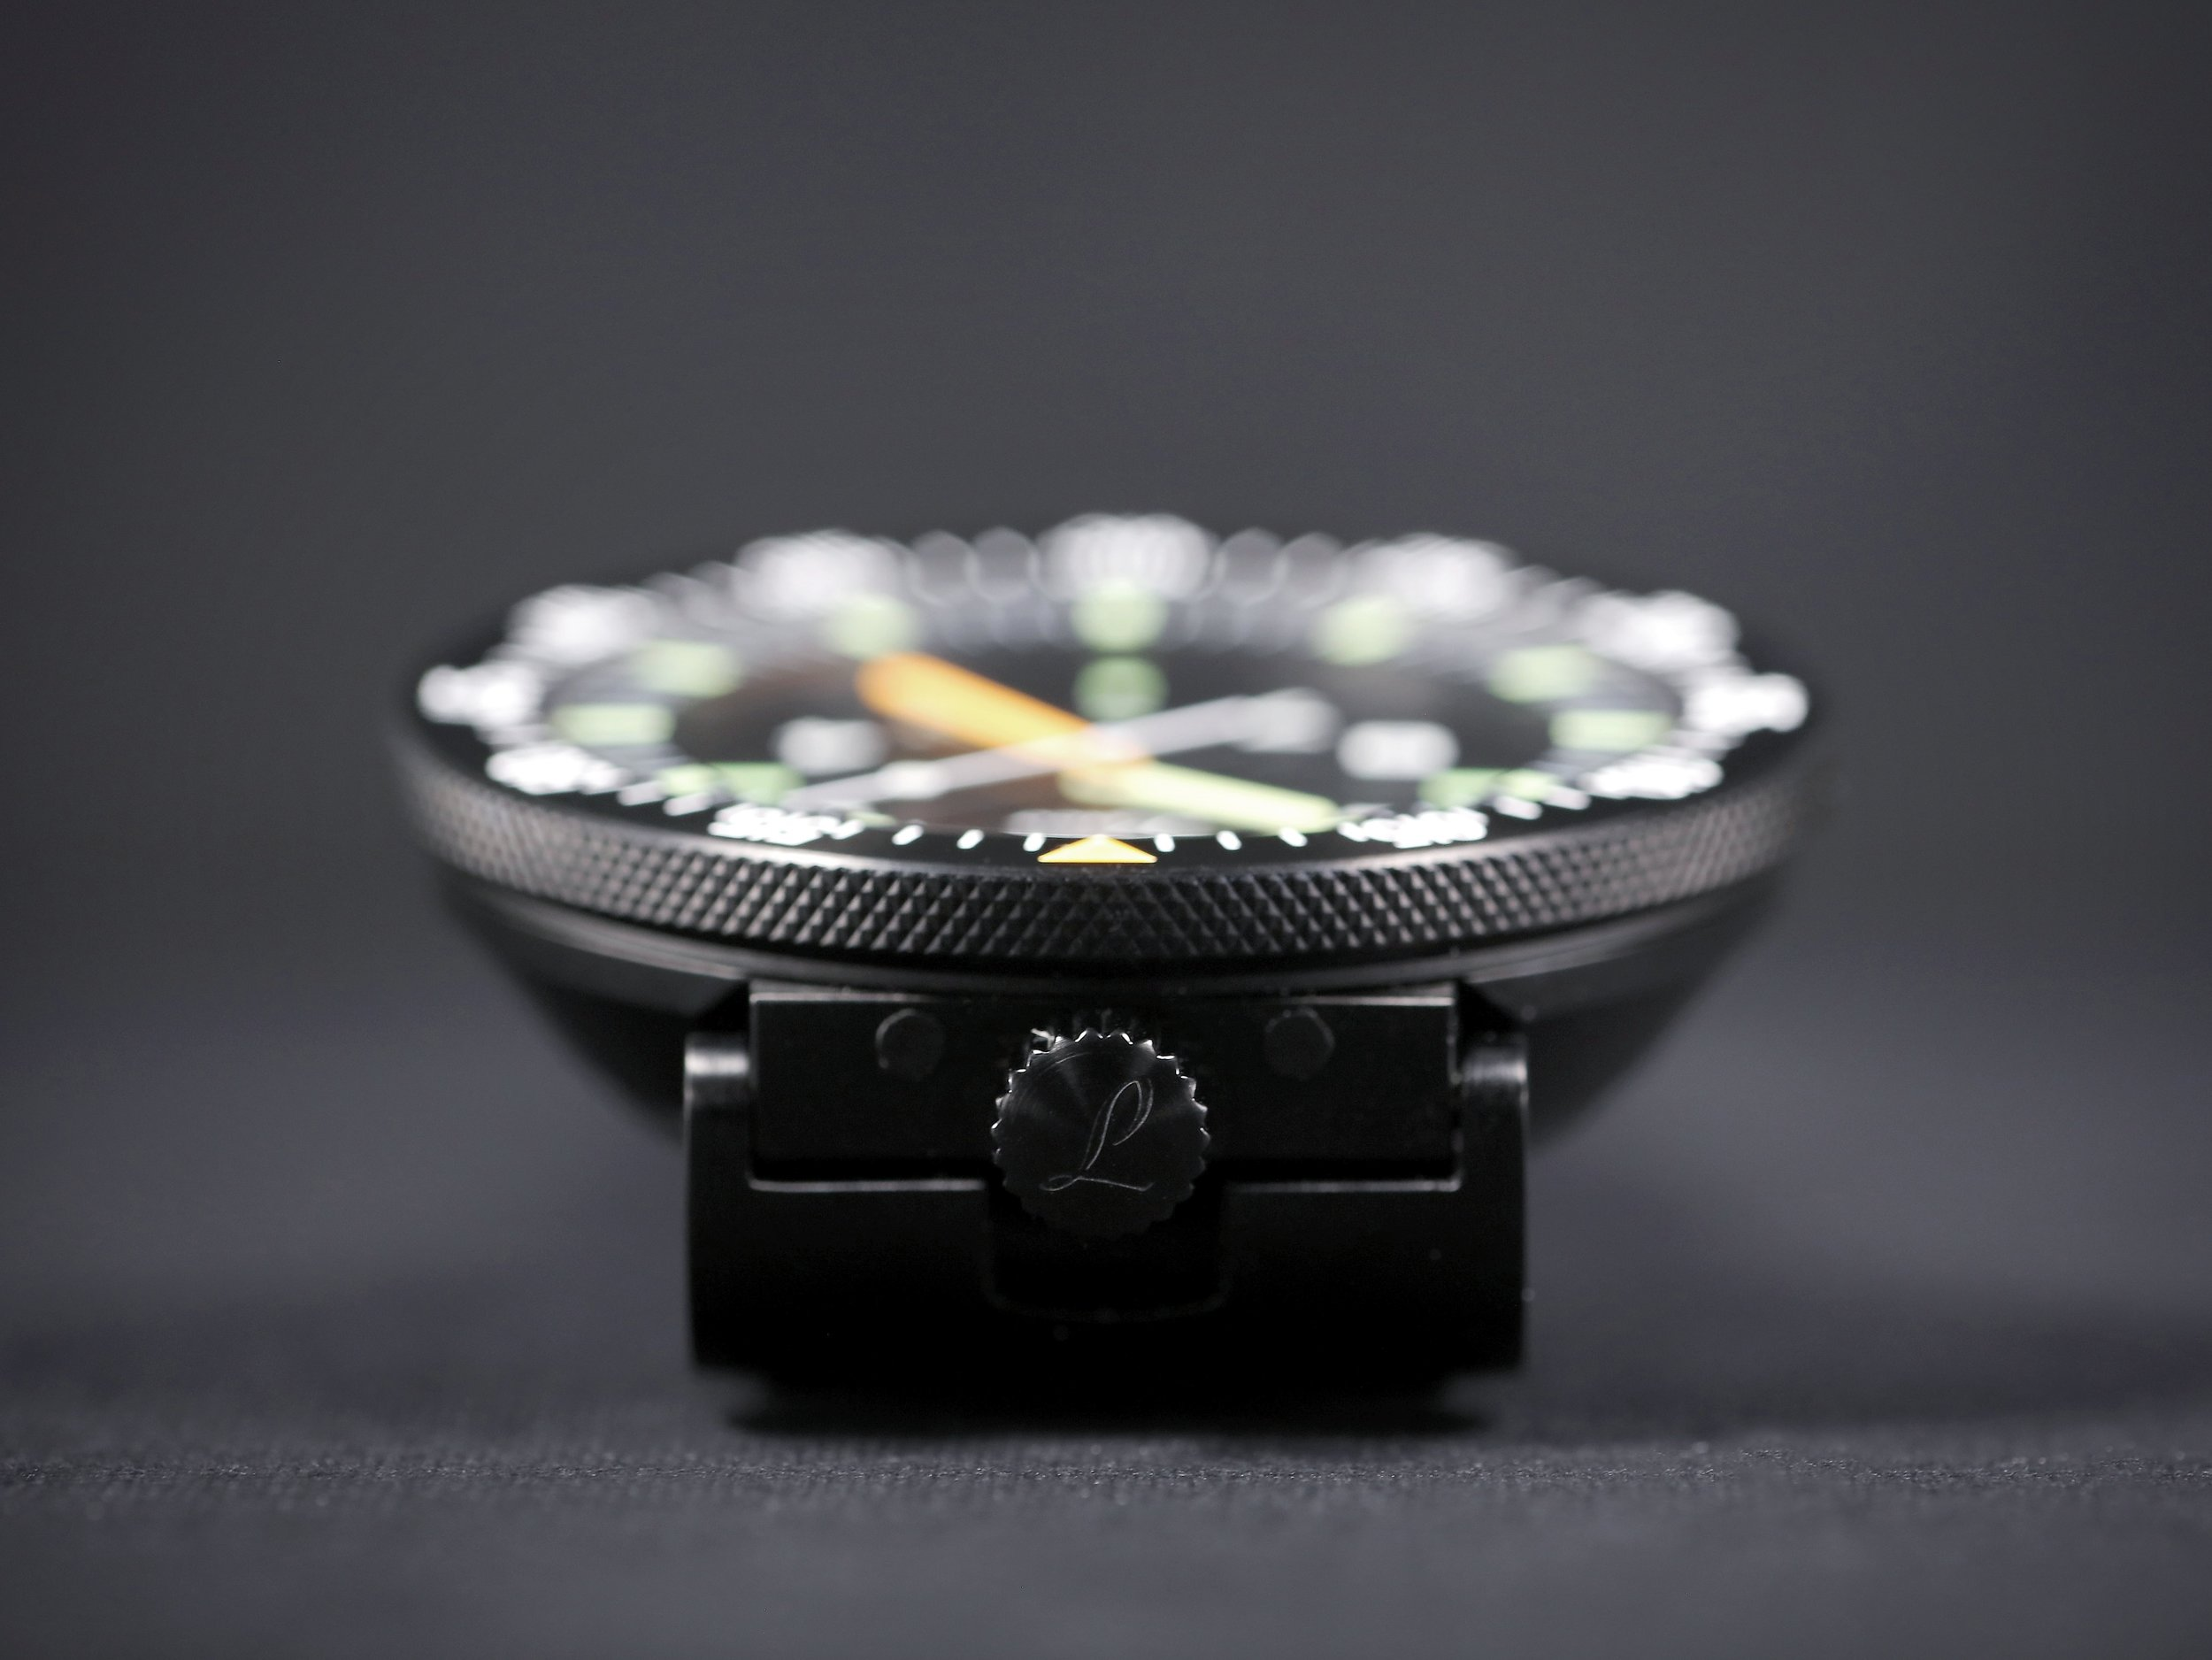 46,25mm of suacer-shaped squad watch.